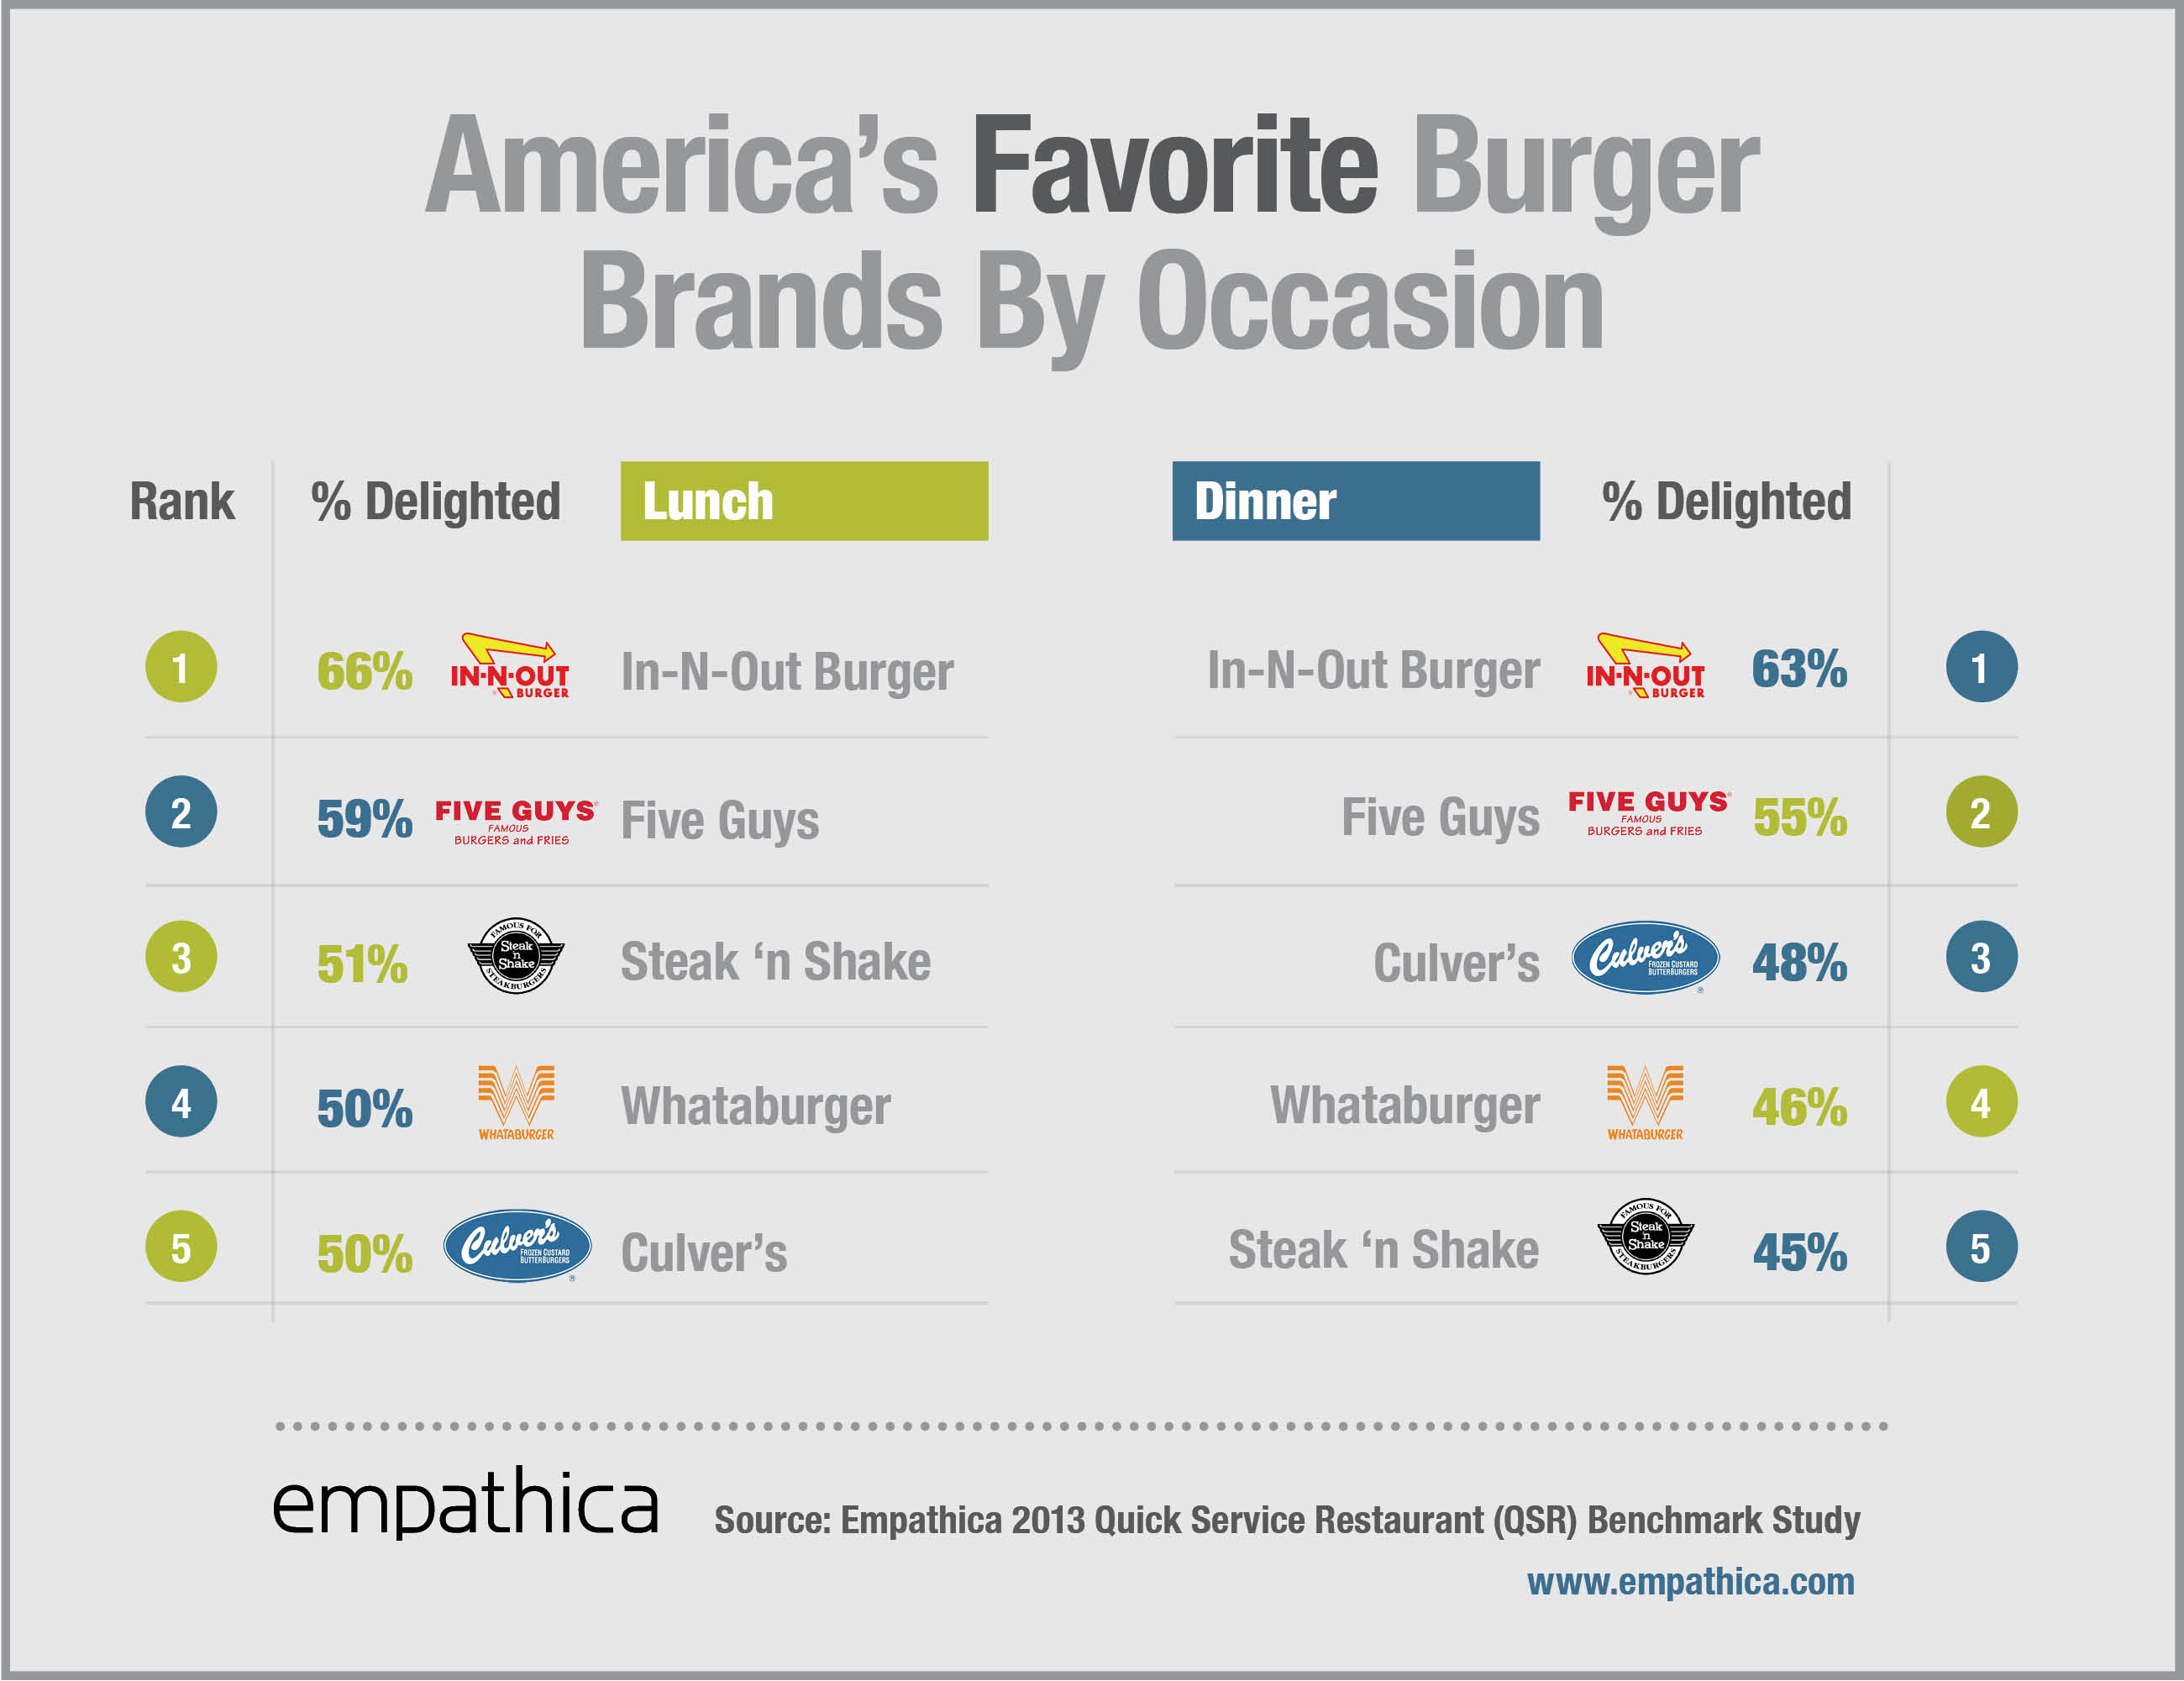 a comparison of burger chains in america Today, it's by far the biggest entry on this list, currently clocking in as the ninth- largest burger chain in america not bad for a dc local compared to ten years ago, fatburger now skews heavily interational, with franchises opened or planned on every continent except antarctica claim(s) to fame: briefly.